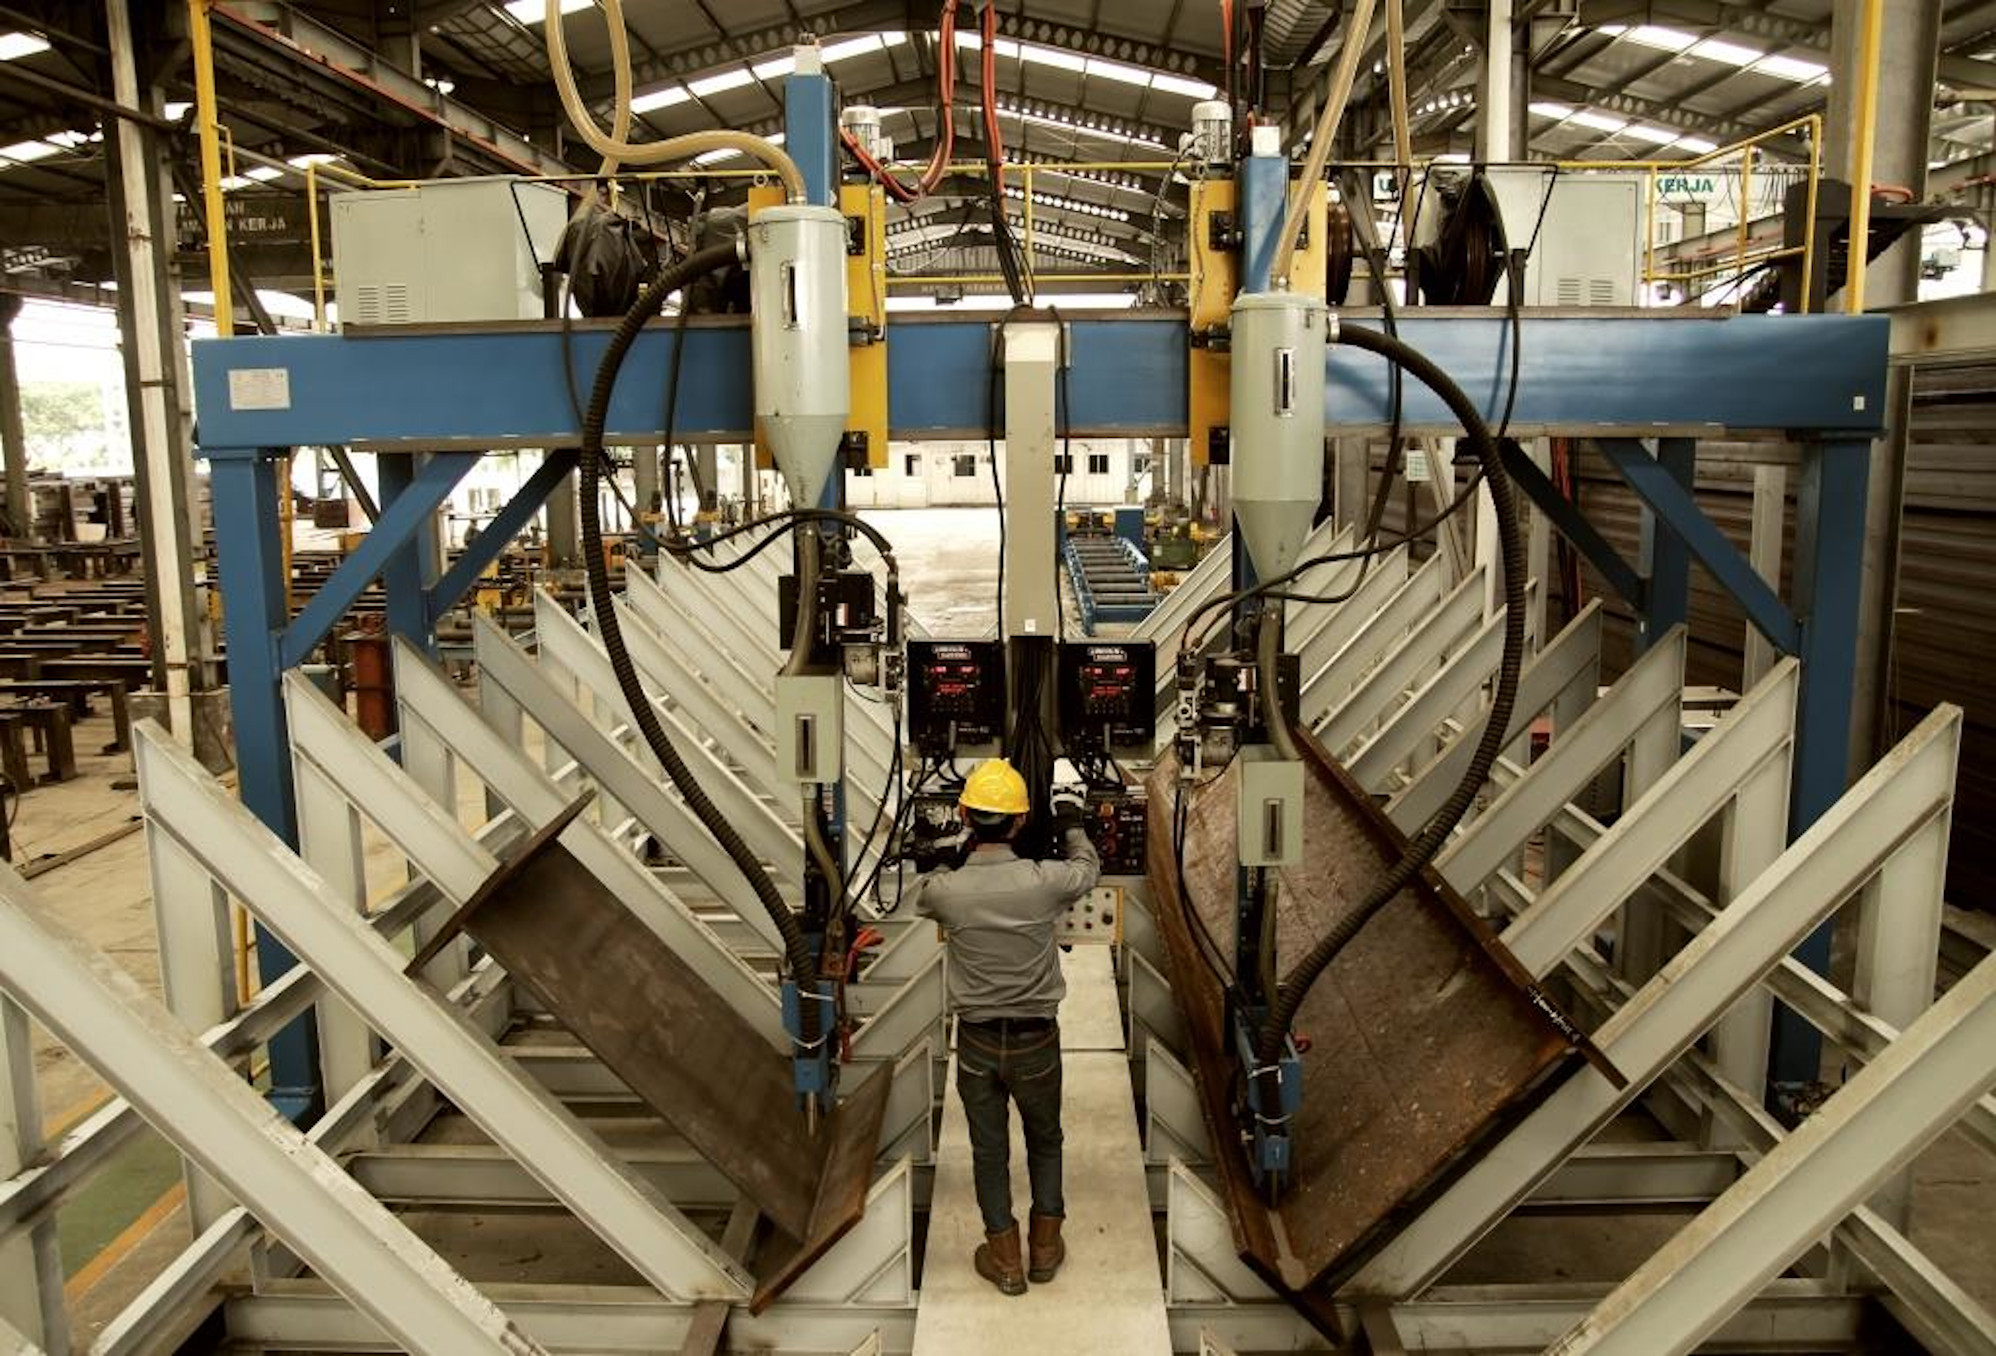 Epiterma Website Photos Revision_20190627_02_About Us_04_Facilities_02_Machines_10_Picture 10